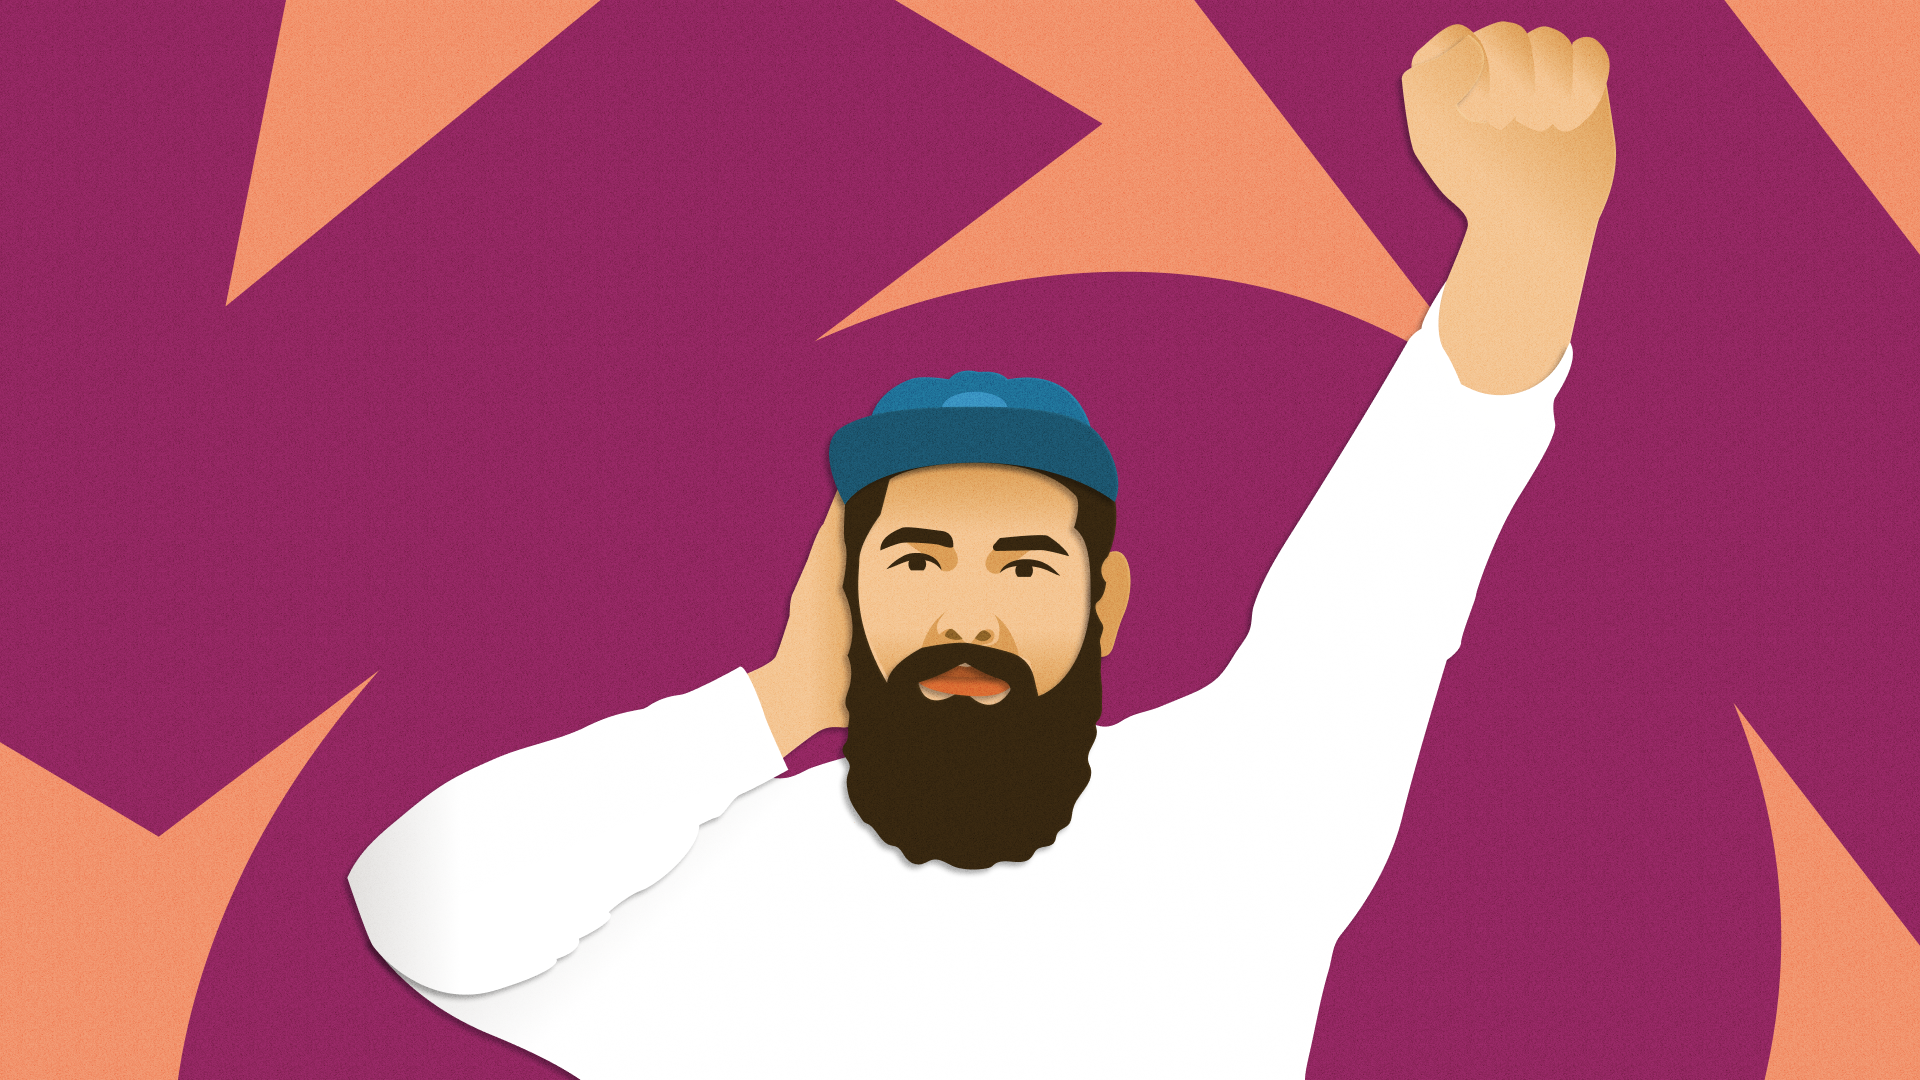 Illustration of Ravi Vasavan with one hand on his ear and his other hand raised in a fist.